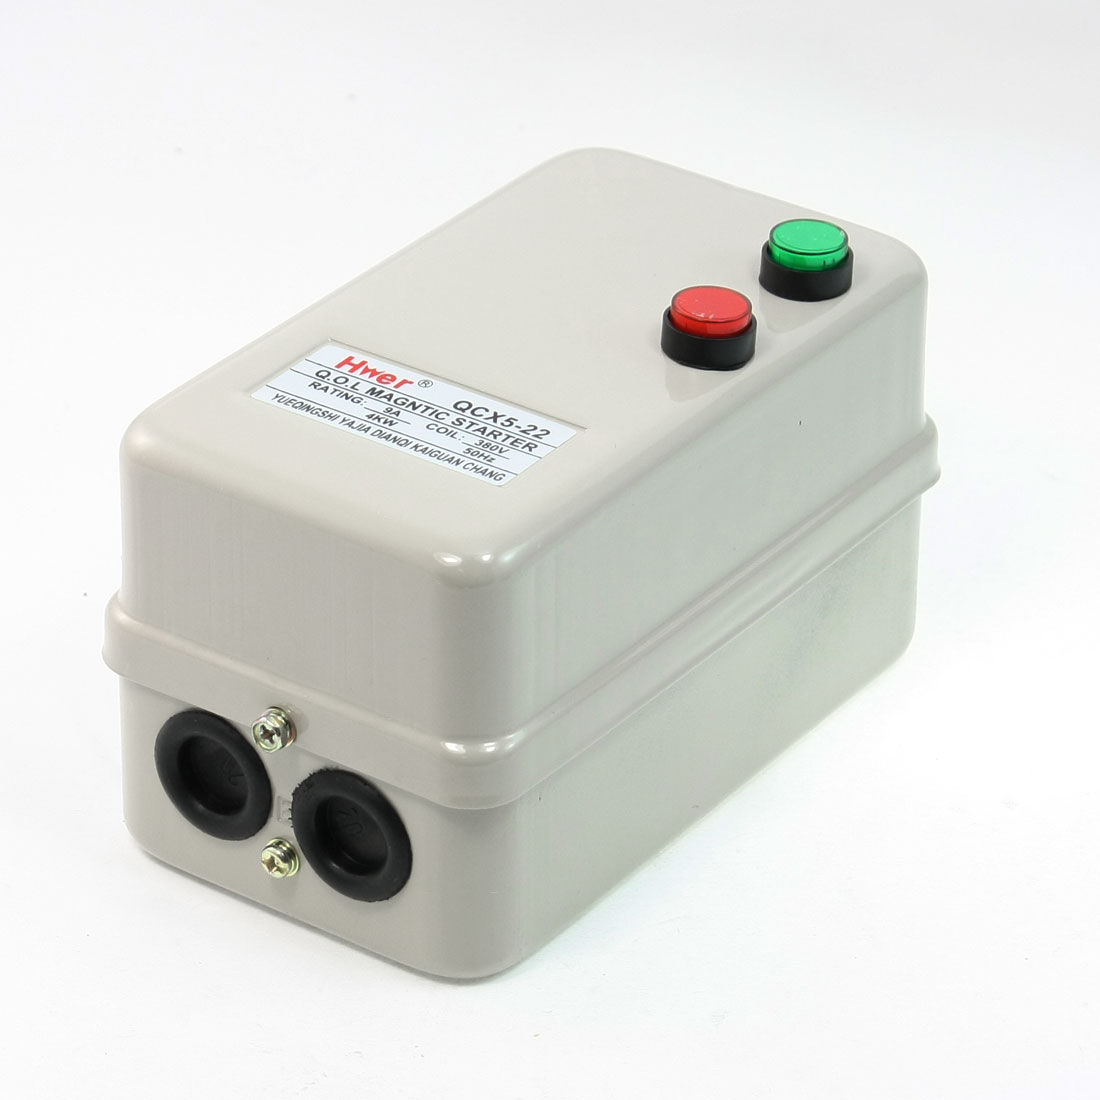 380V Coil 4KW 3 Pole 1NO Motor Control Contactor Magnetic Starter 6.8-11A